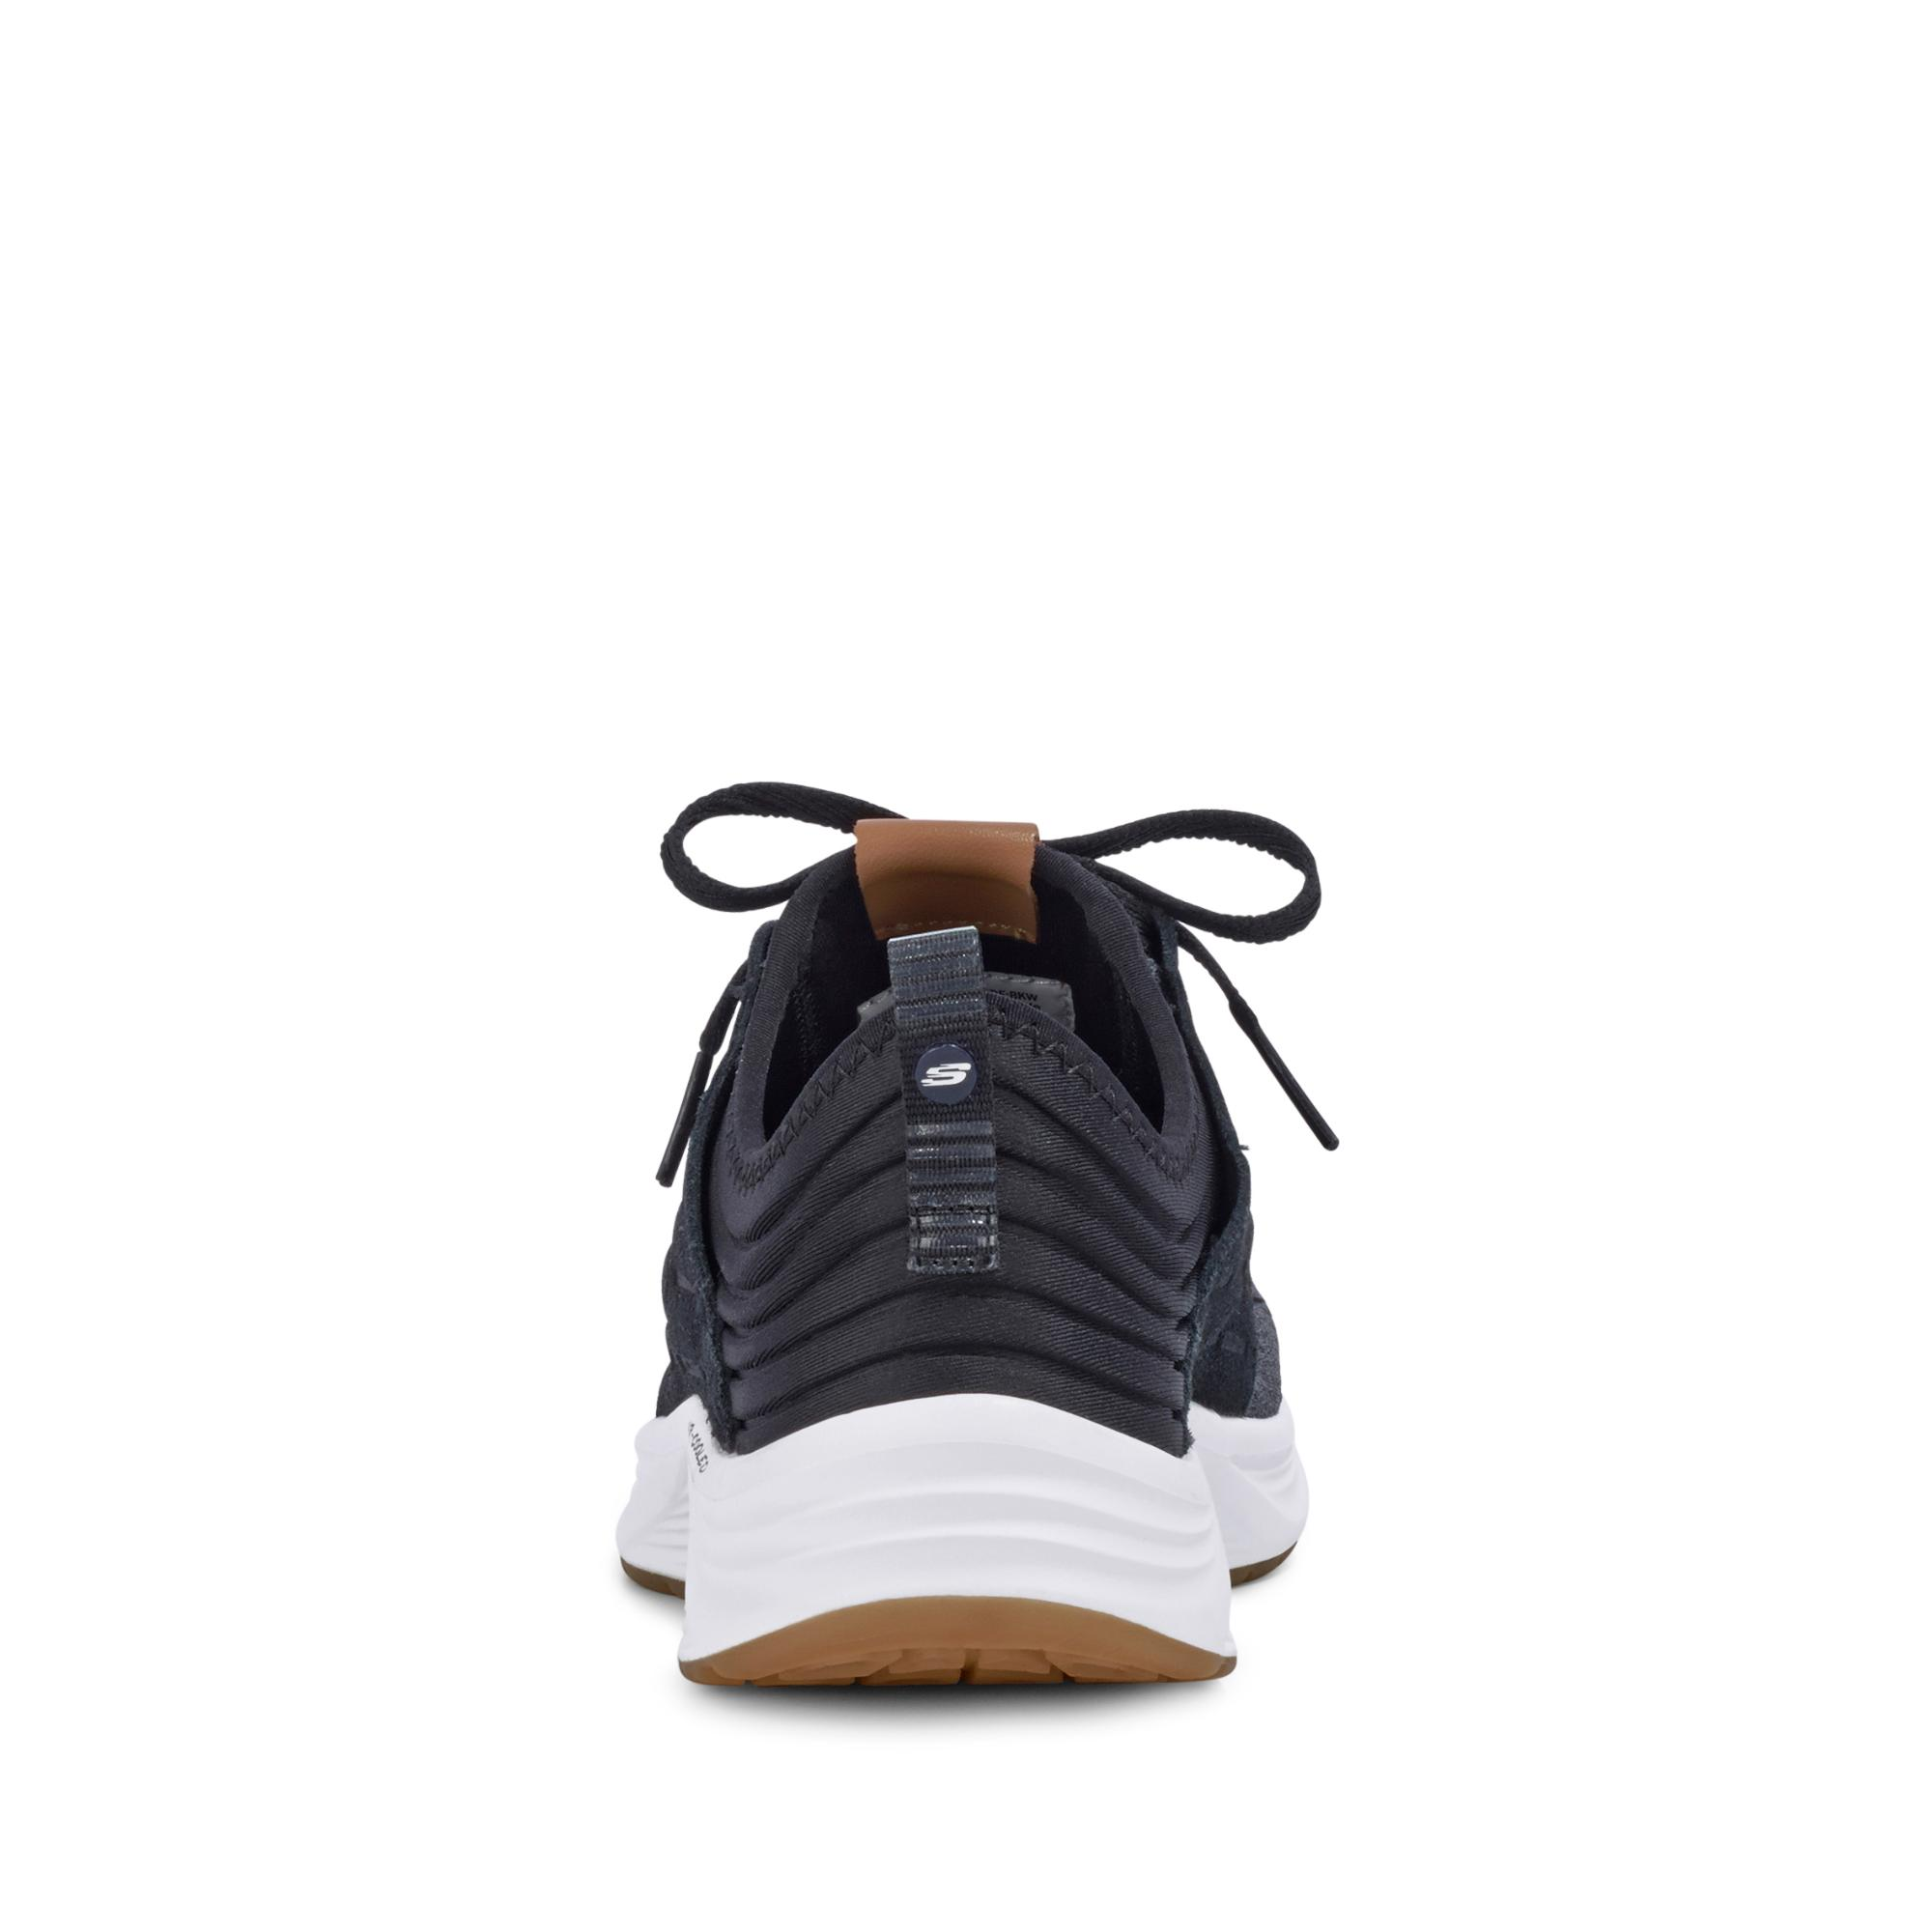 huge selection of 3f023 44ae1 ... JORDAN FLY  89 MEN S TRAINERS 940267 940267 940267 006 SIZES  UK8 8.5 10.5 ...